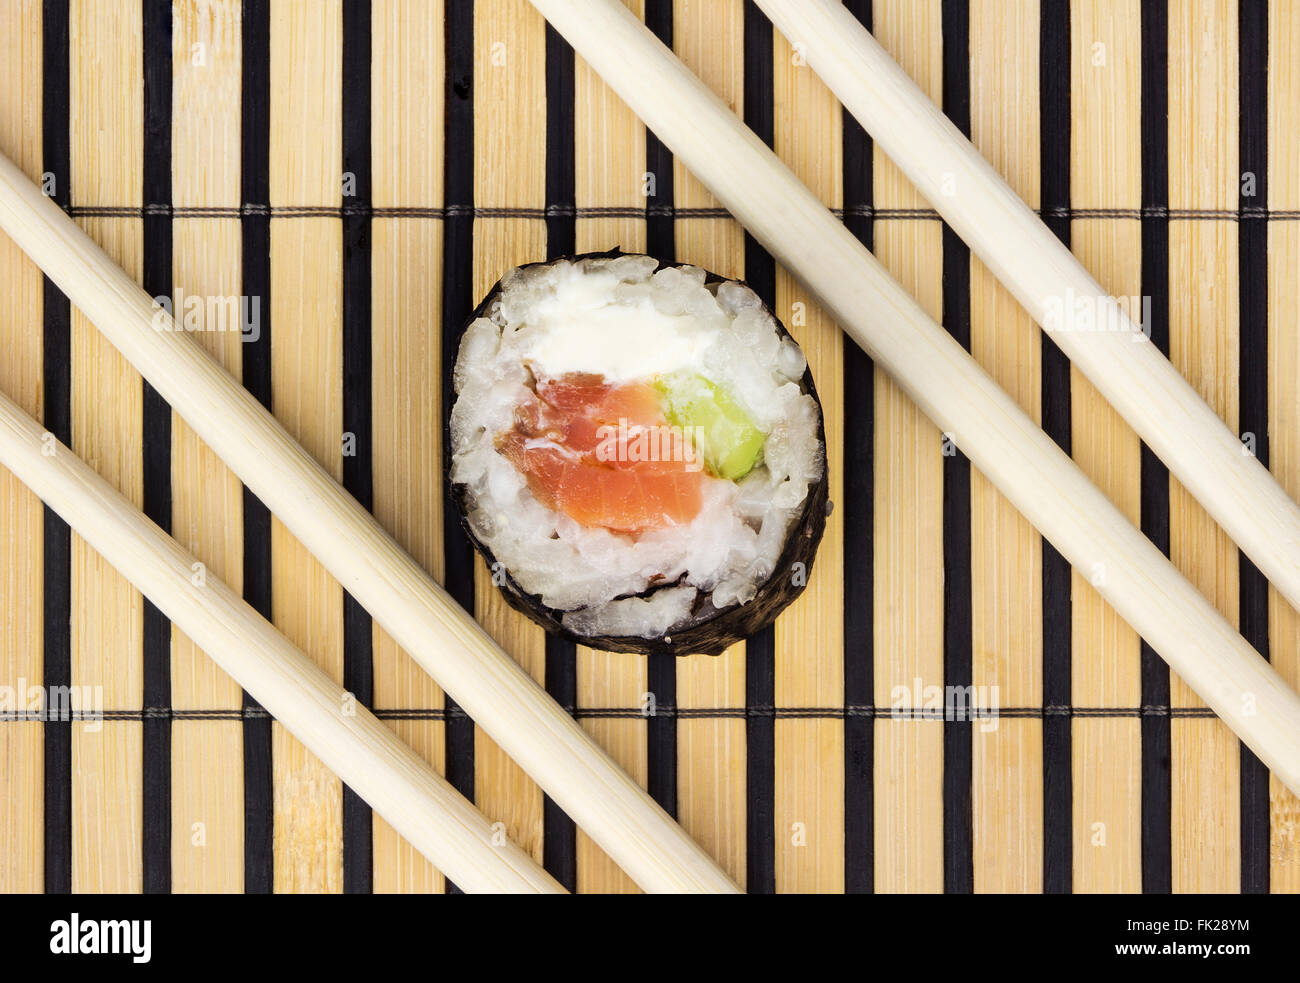 Sushi Roll And Chopsticks Over Bamboo Mat Stock Photo